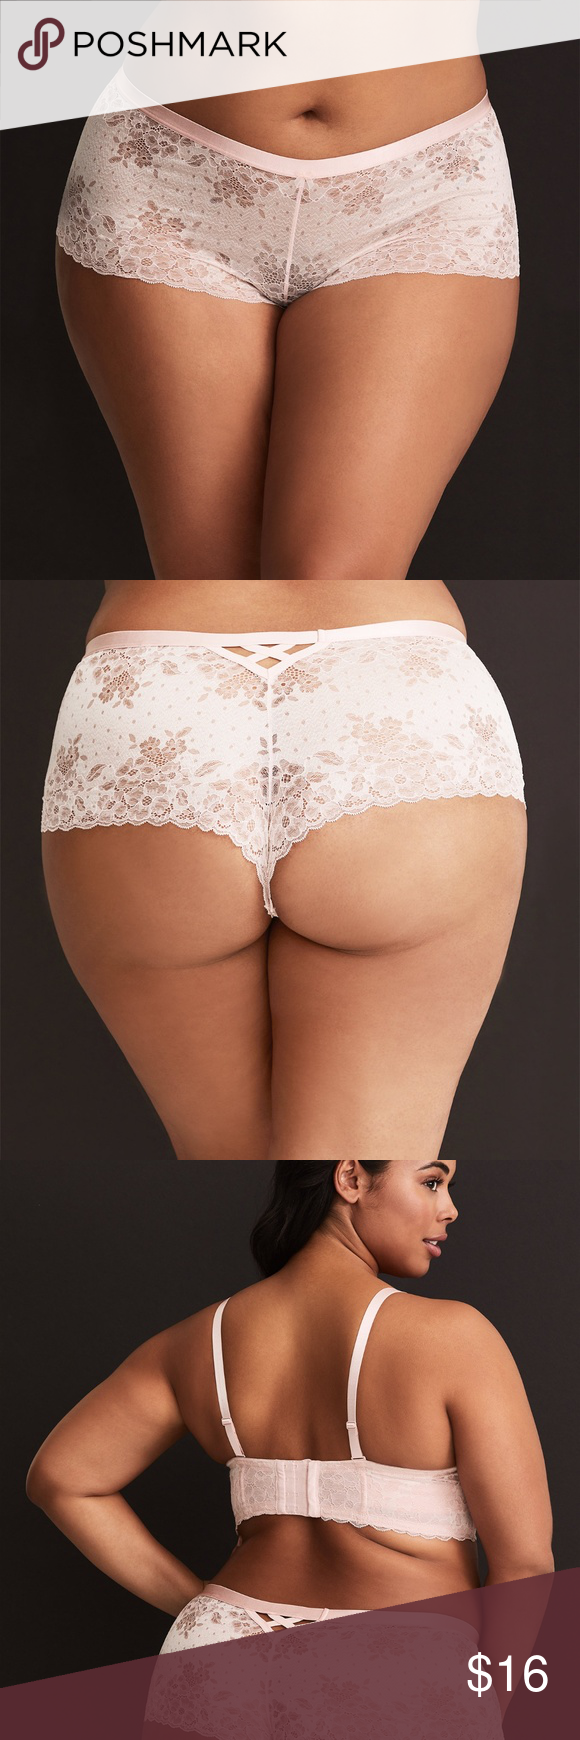 08f757fb33aa Torrid Light Pink Lattice Lace Cheeky Panty N103 Crafted in a delicate light  pink lace, this cheeky panty is accented with a contrasting lattice cutout  in ...